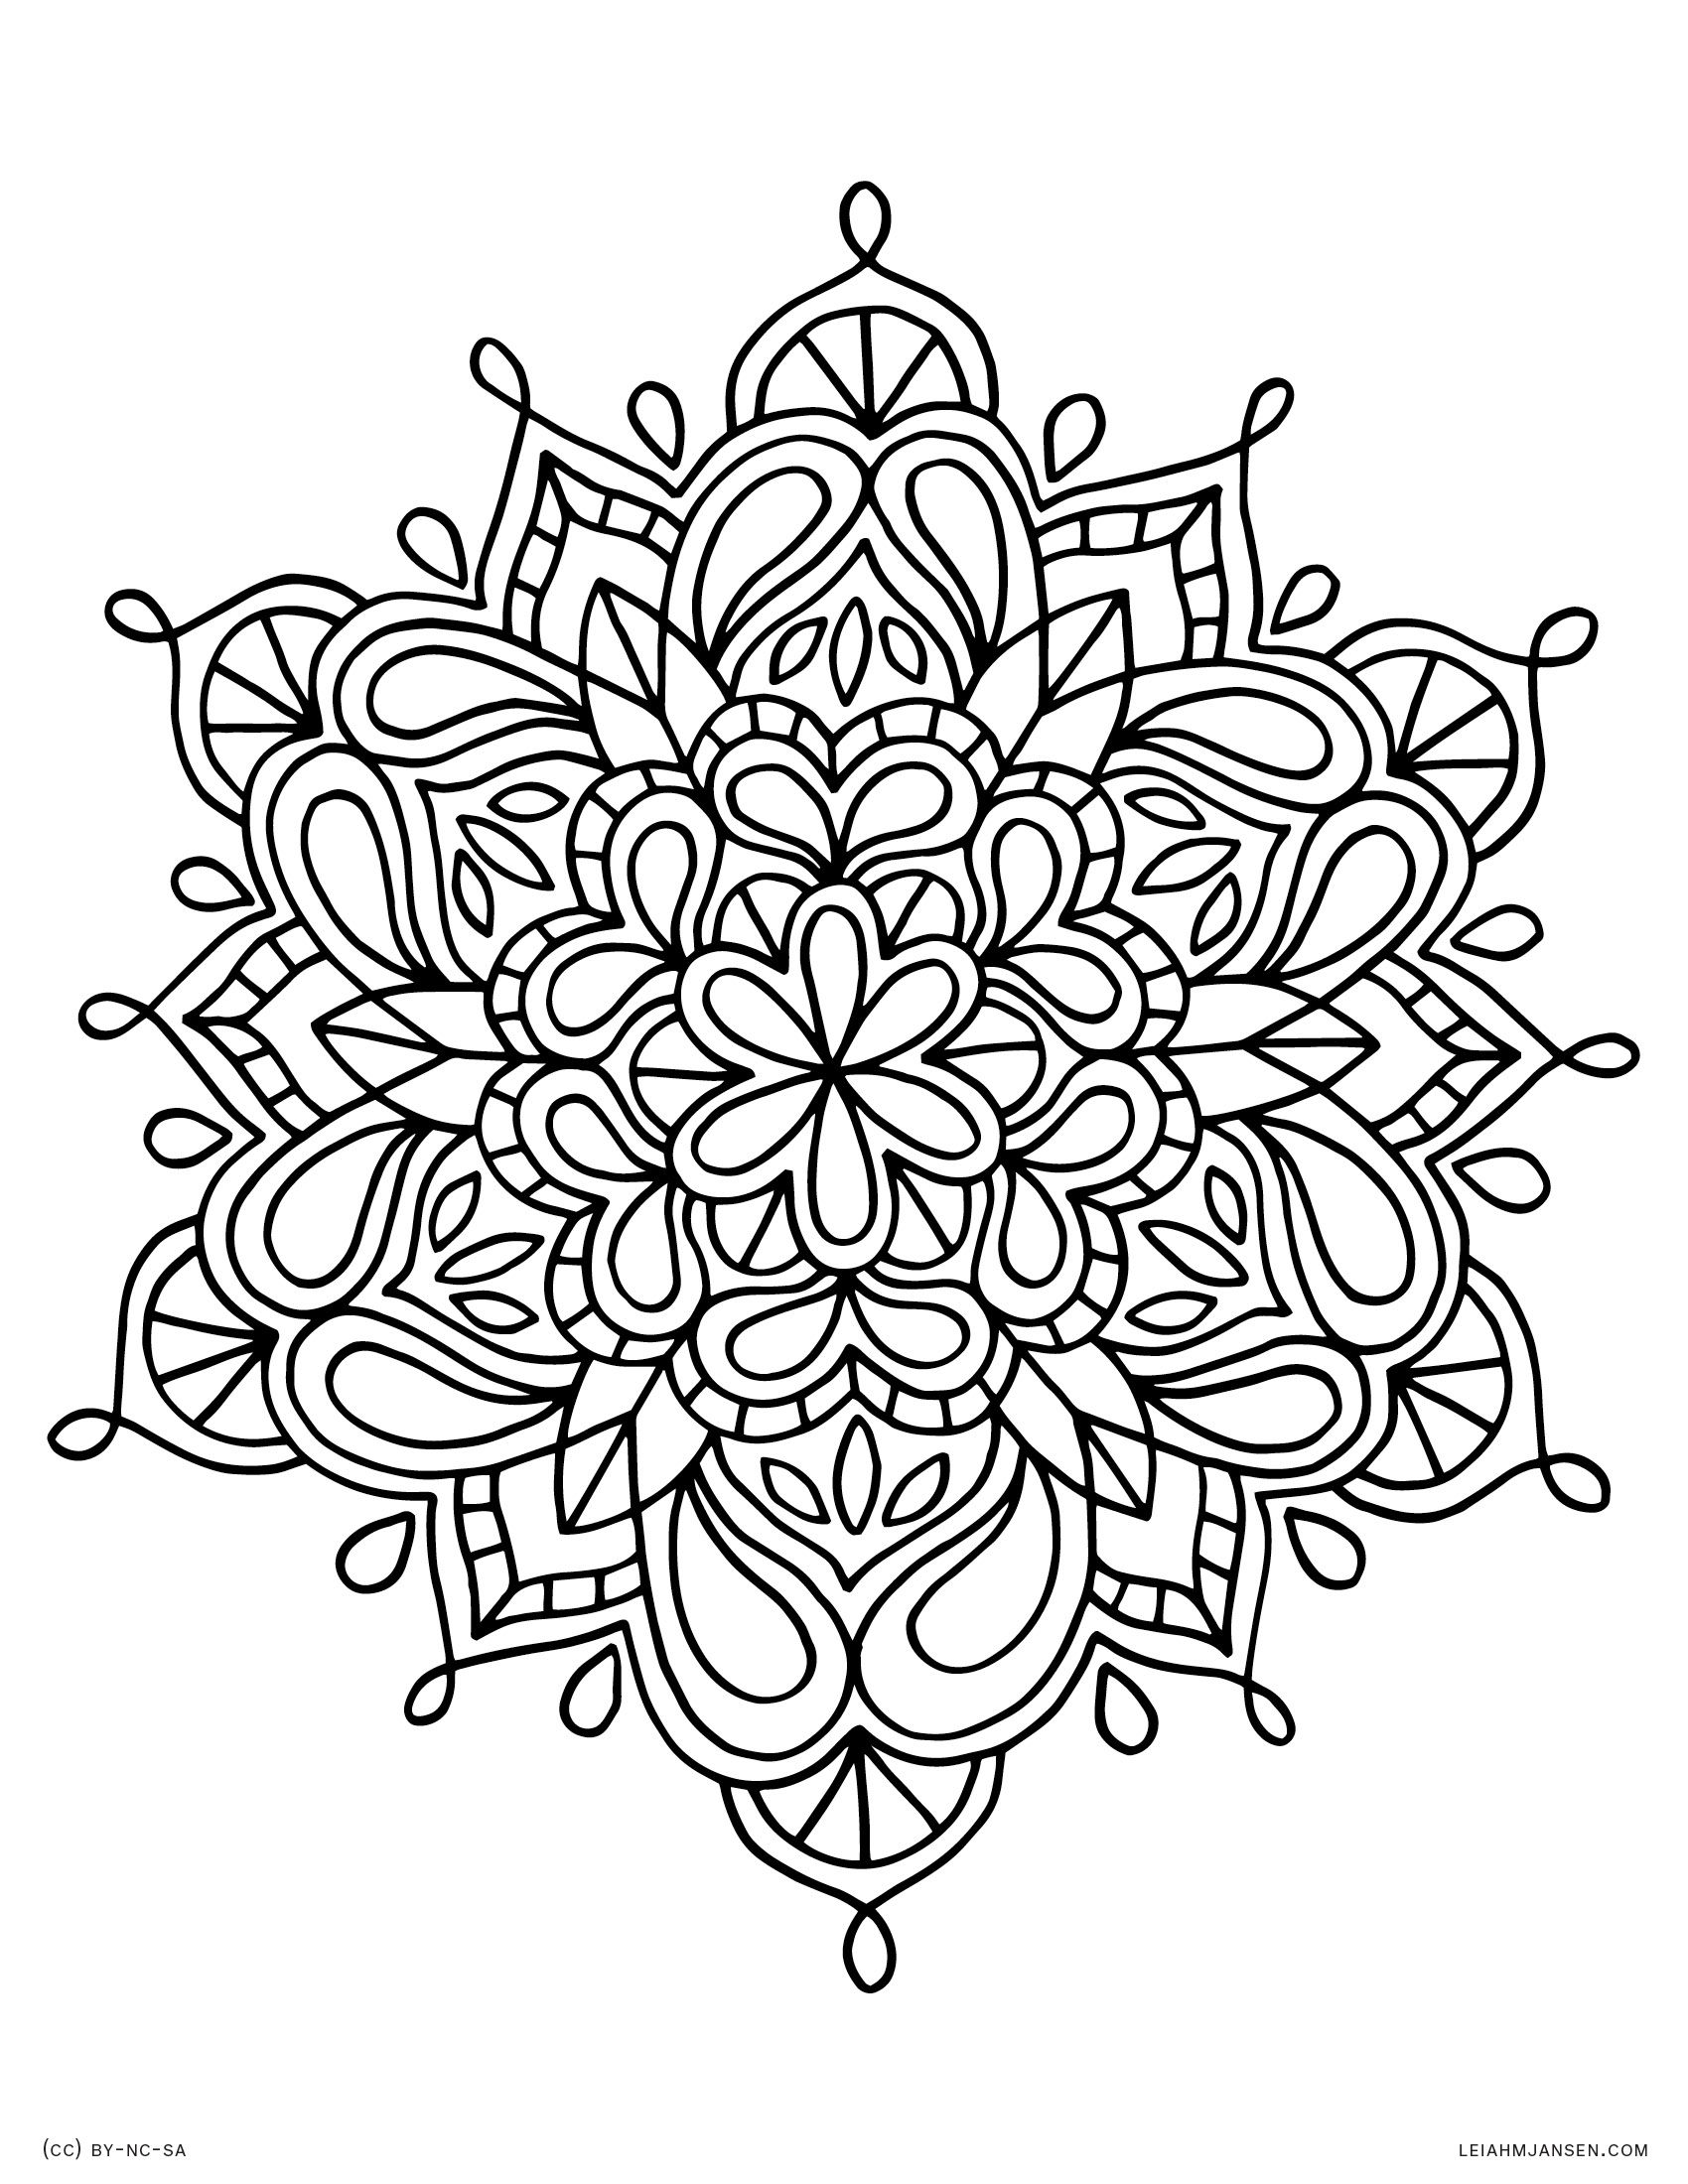 printable flower pictures get this flowers coloring pages kids printable 8561 pictures printable flower